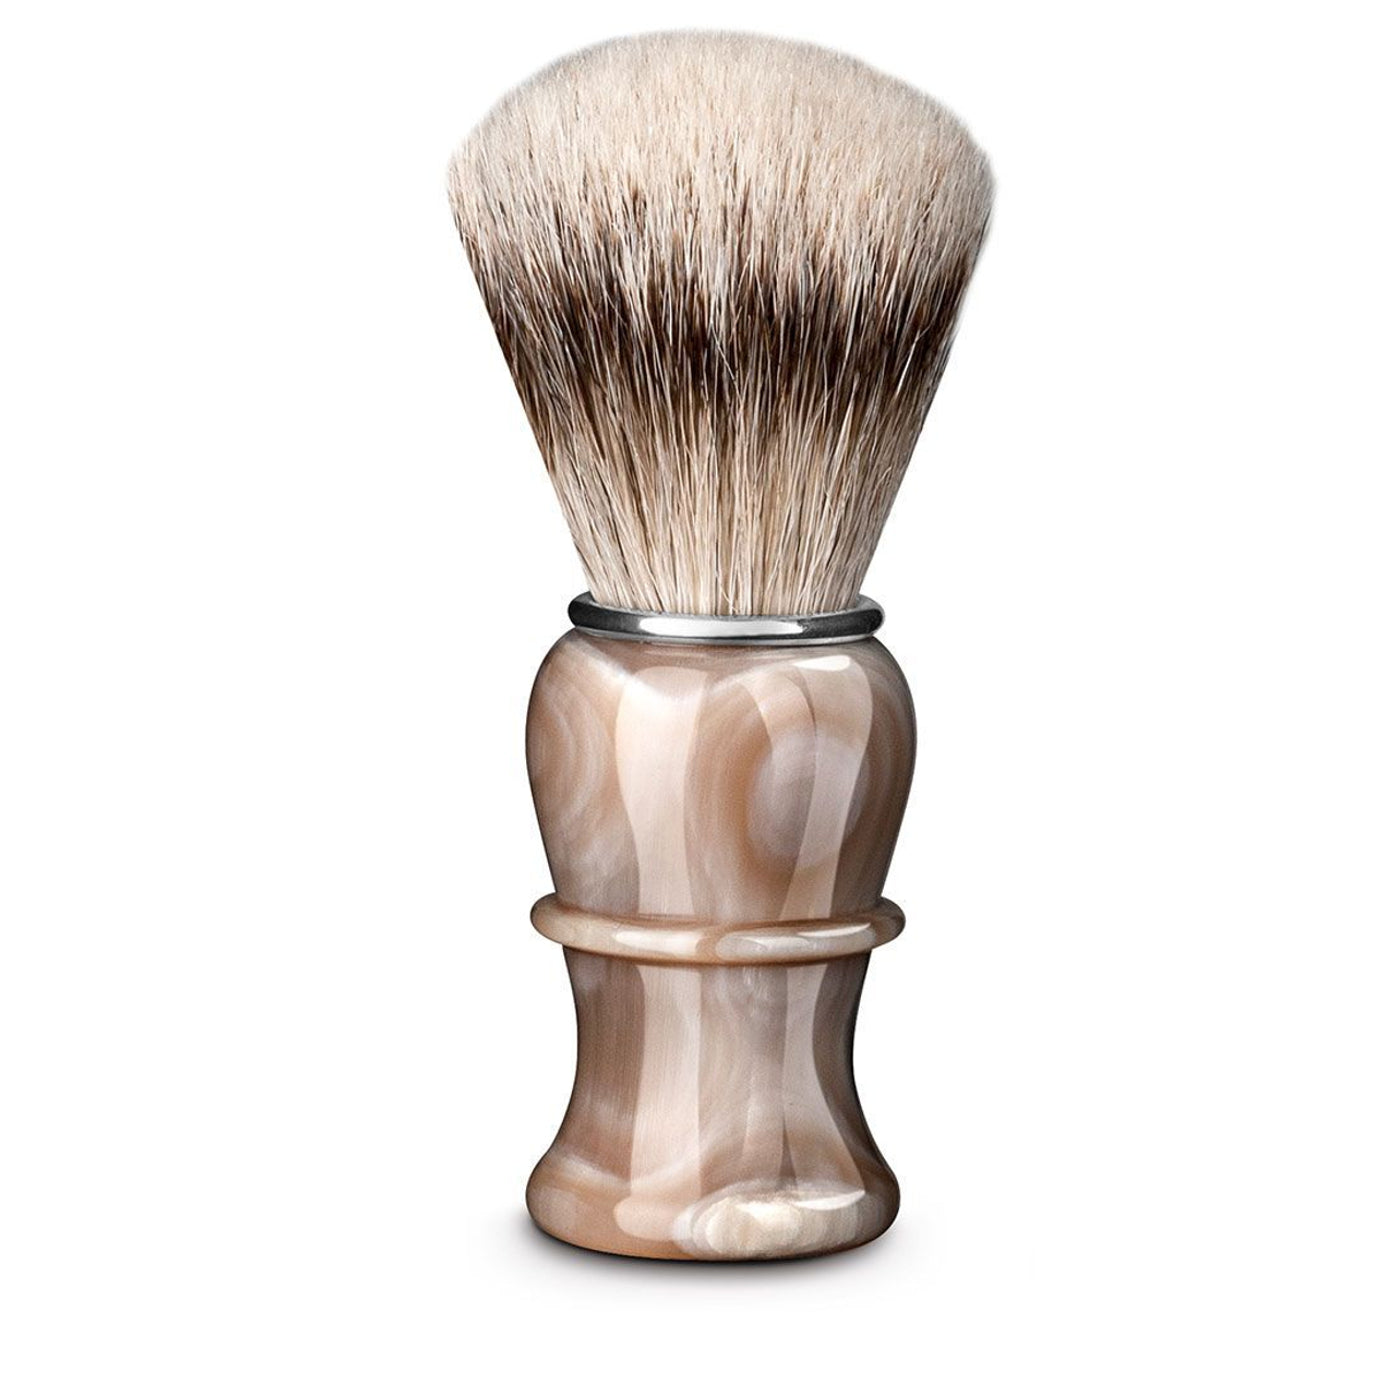 Thiers Issard Blonde Horn Silvertip Badger 26mm Shaving Brush